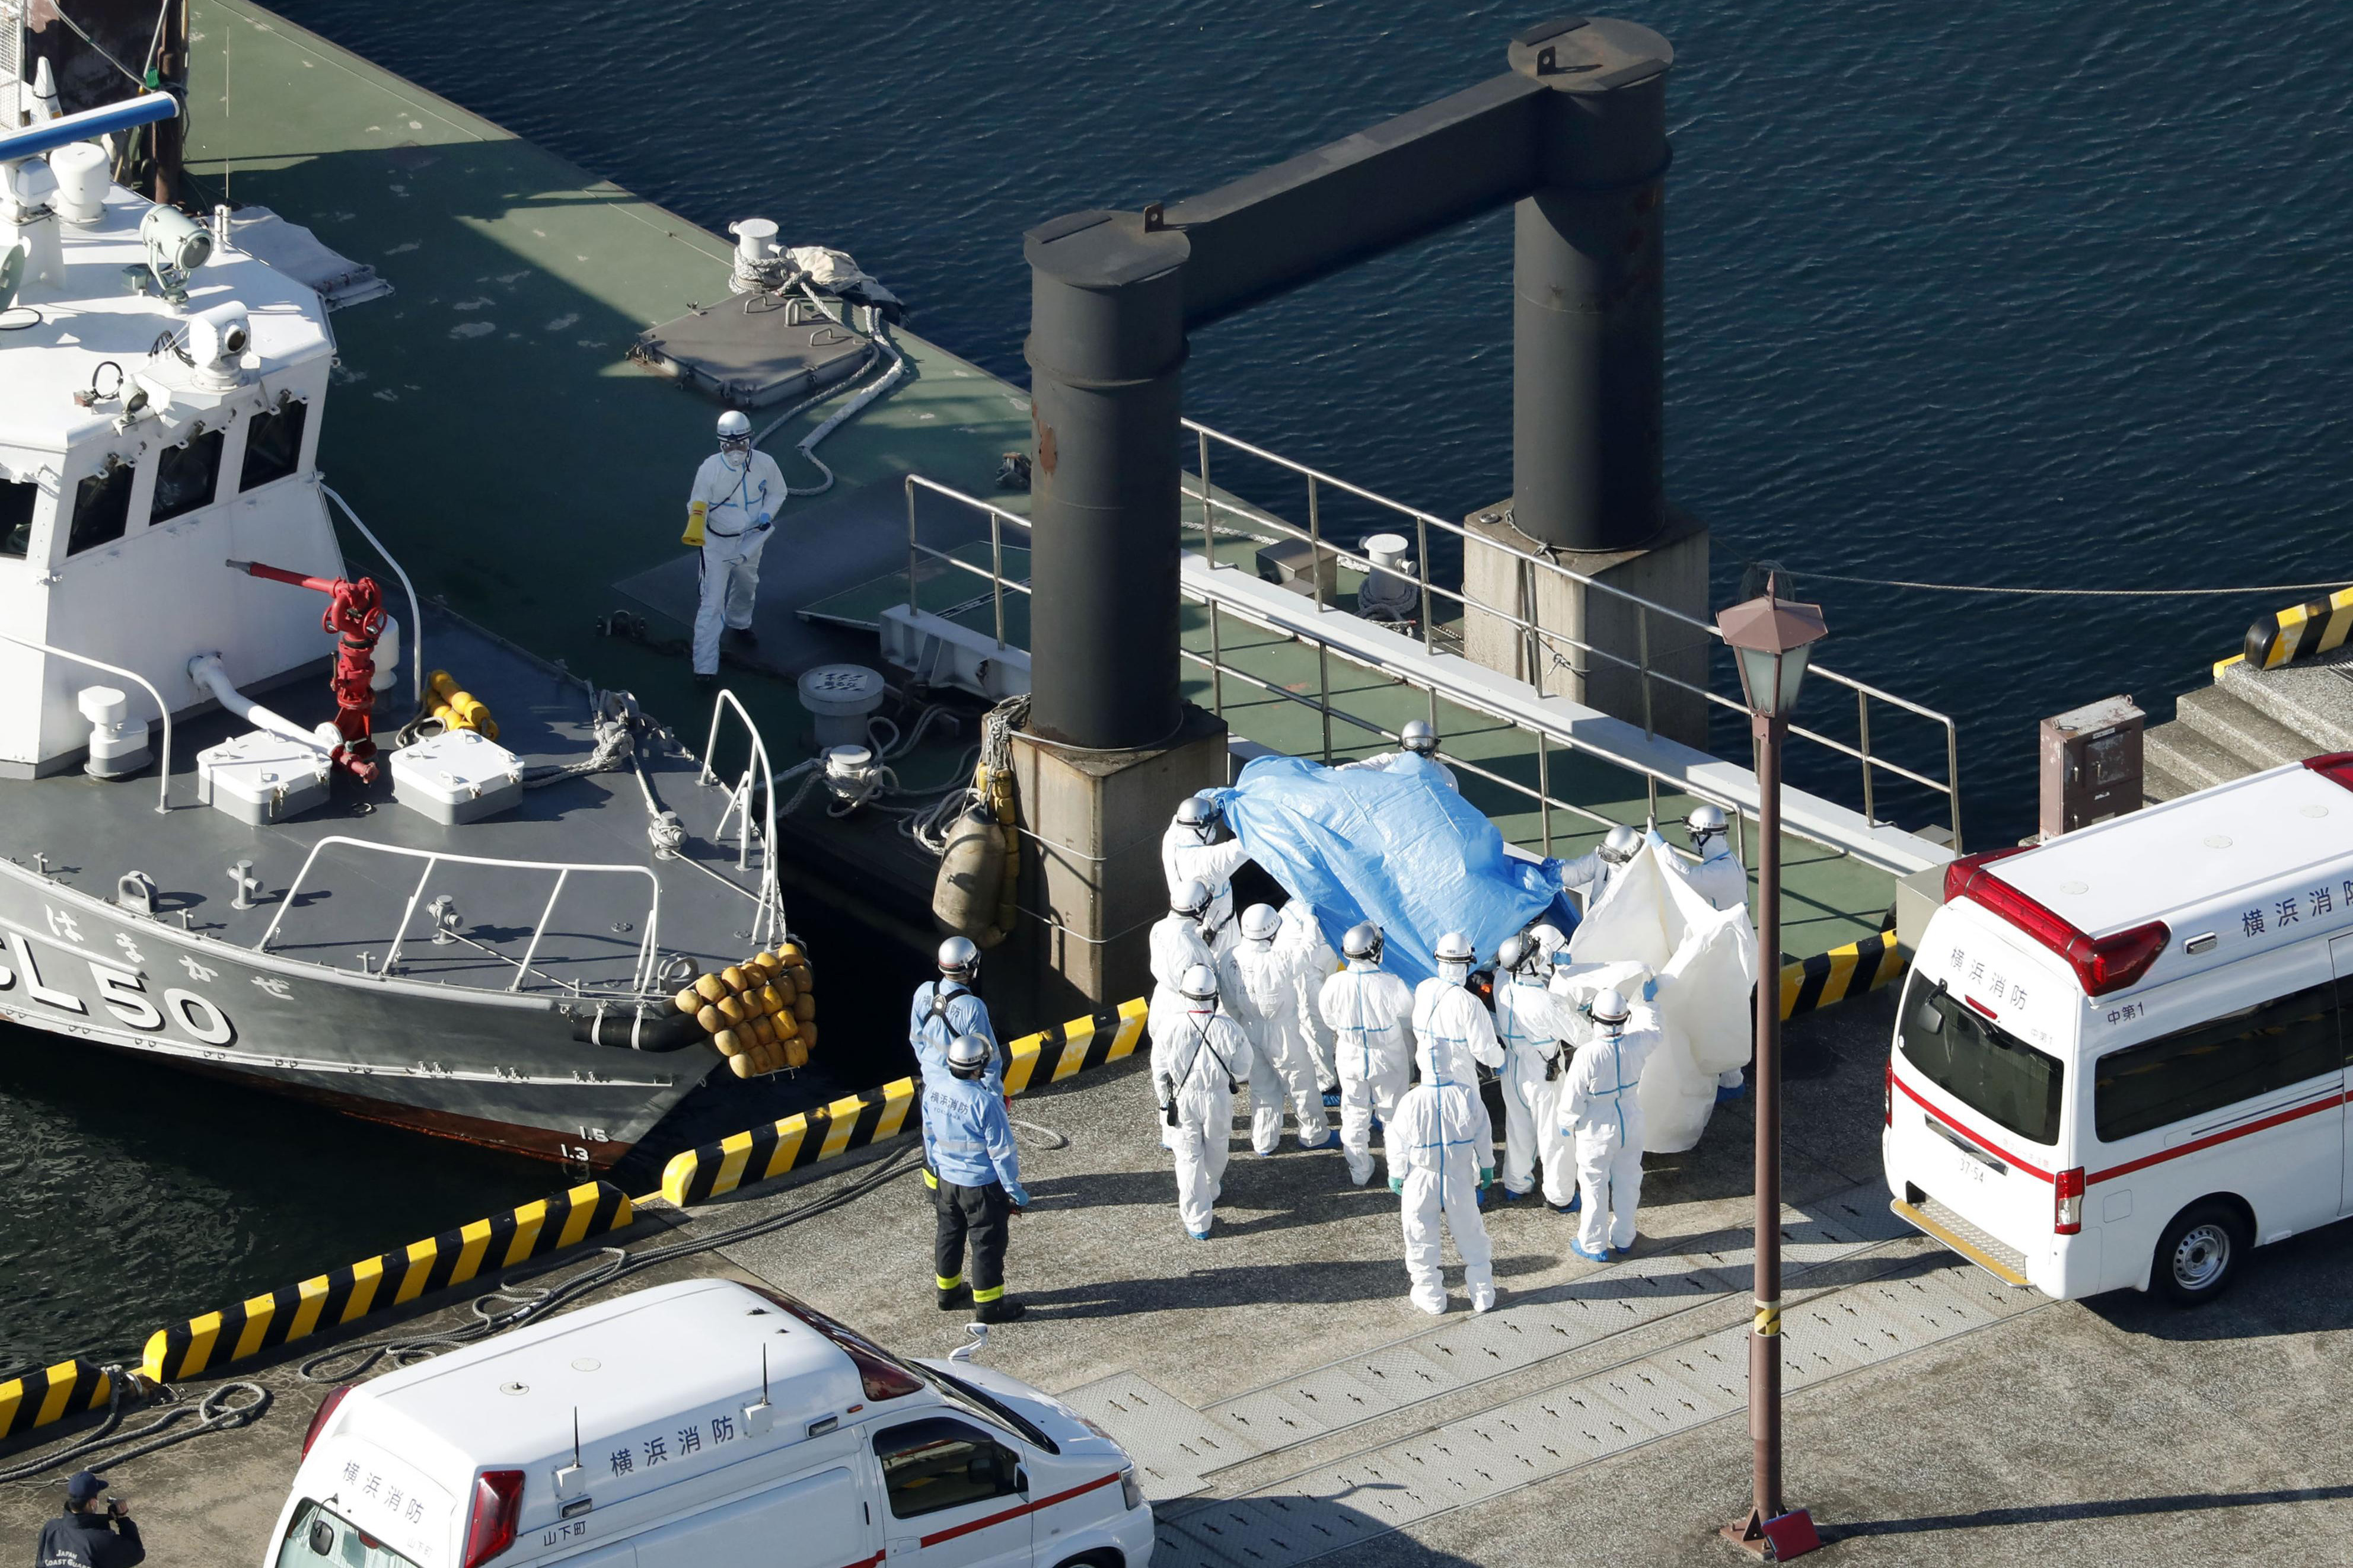 Medical workers in protective suits lead a passenger tested positive for a new coronavirus from the cruise ship Diamond Princess at Yokohama Port in Yokohama, south of Tokyo, Wednesday, Feb. 5, 2020. Japan said Wednesday 10 people on the cruise ship have tested positive for the new virus and were being taken to hospitals. Health Minister Nobukatsu Kato said all the 3,700 people and passengers on the ship will be quarantined on board for up to 14 days under Japanese law. (Hiroko Harima/Kyodo News via AP)